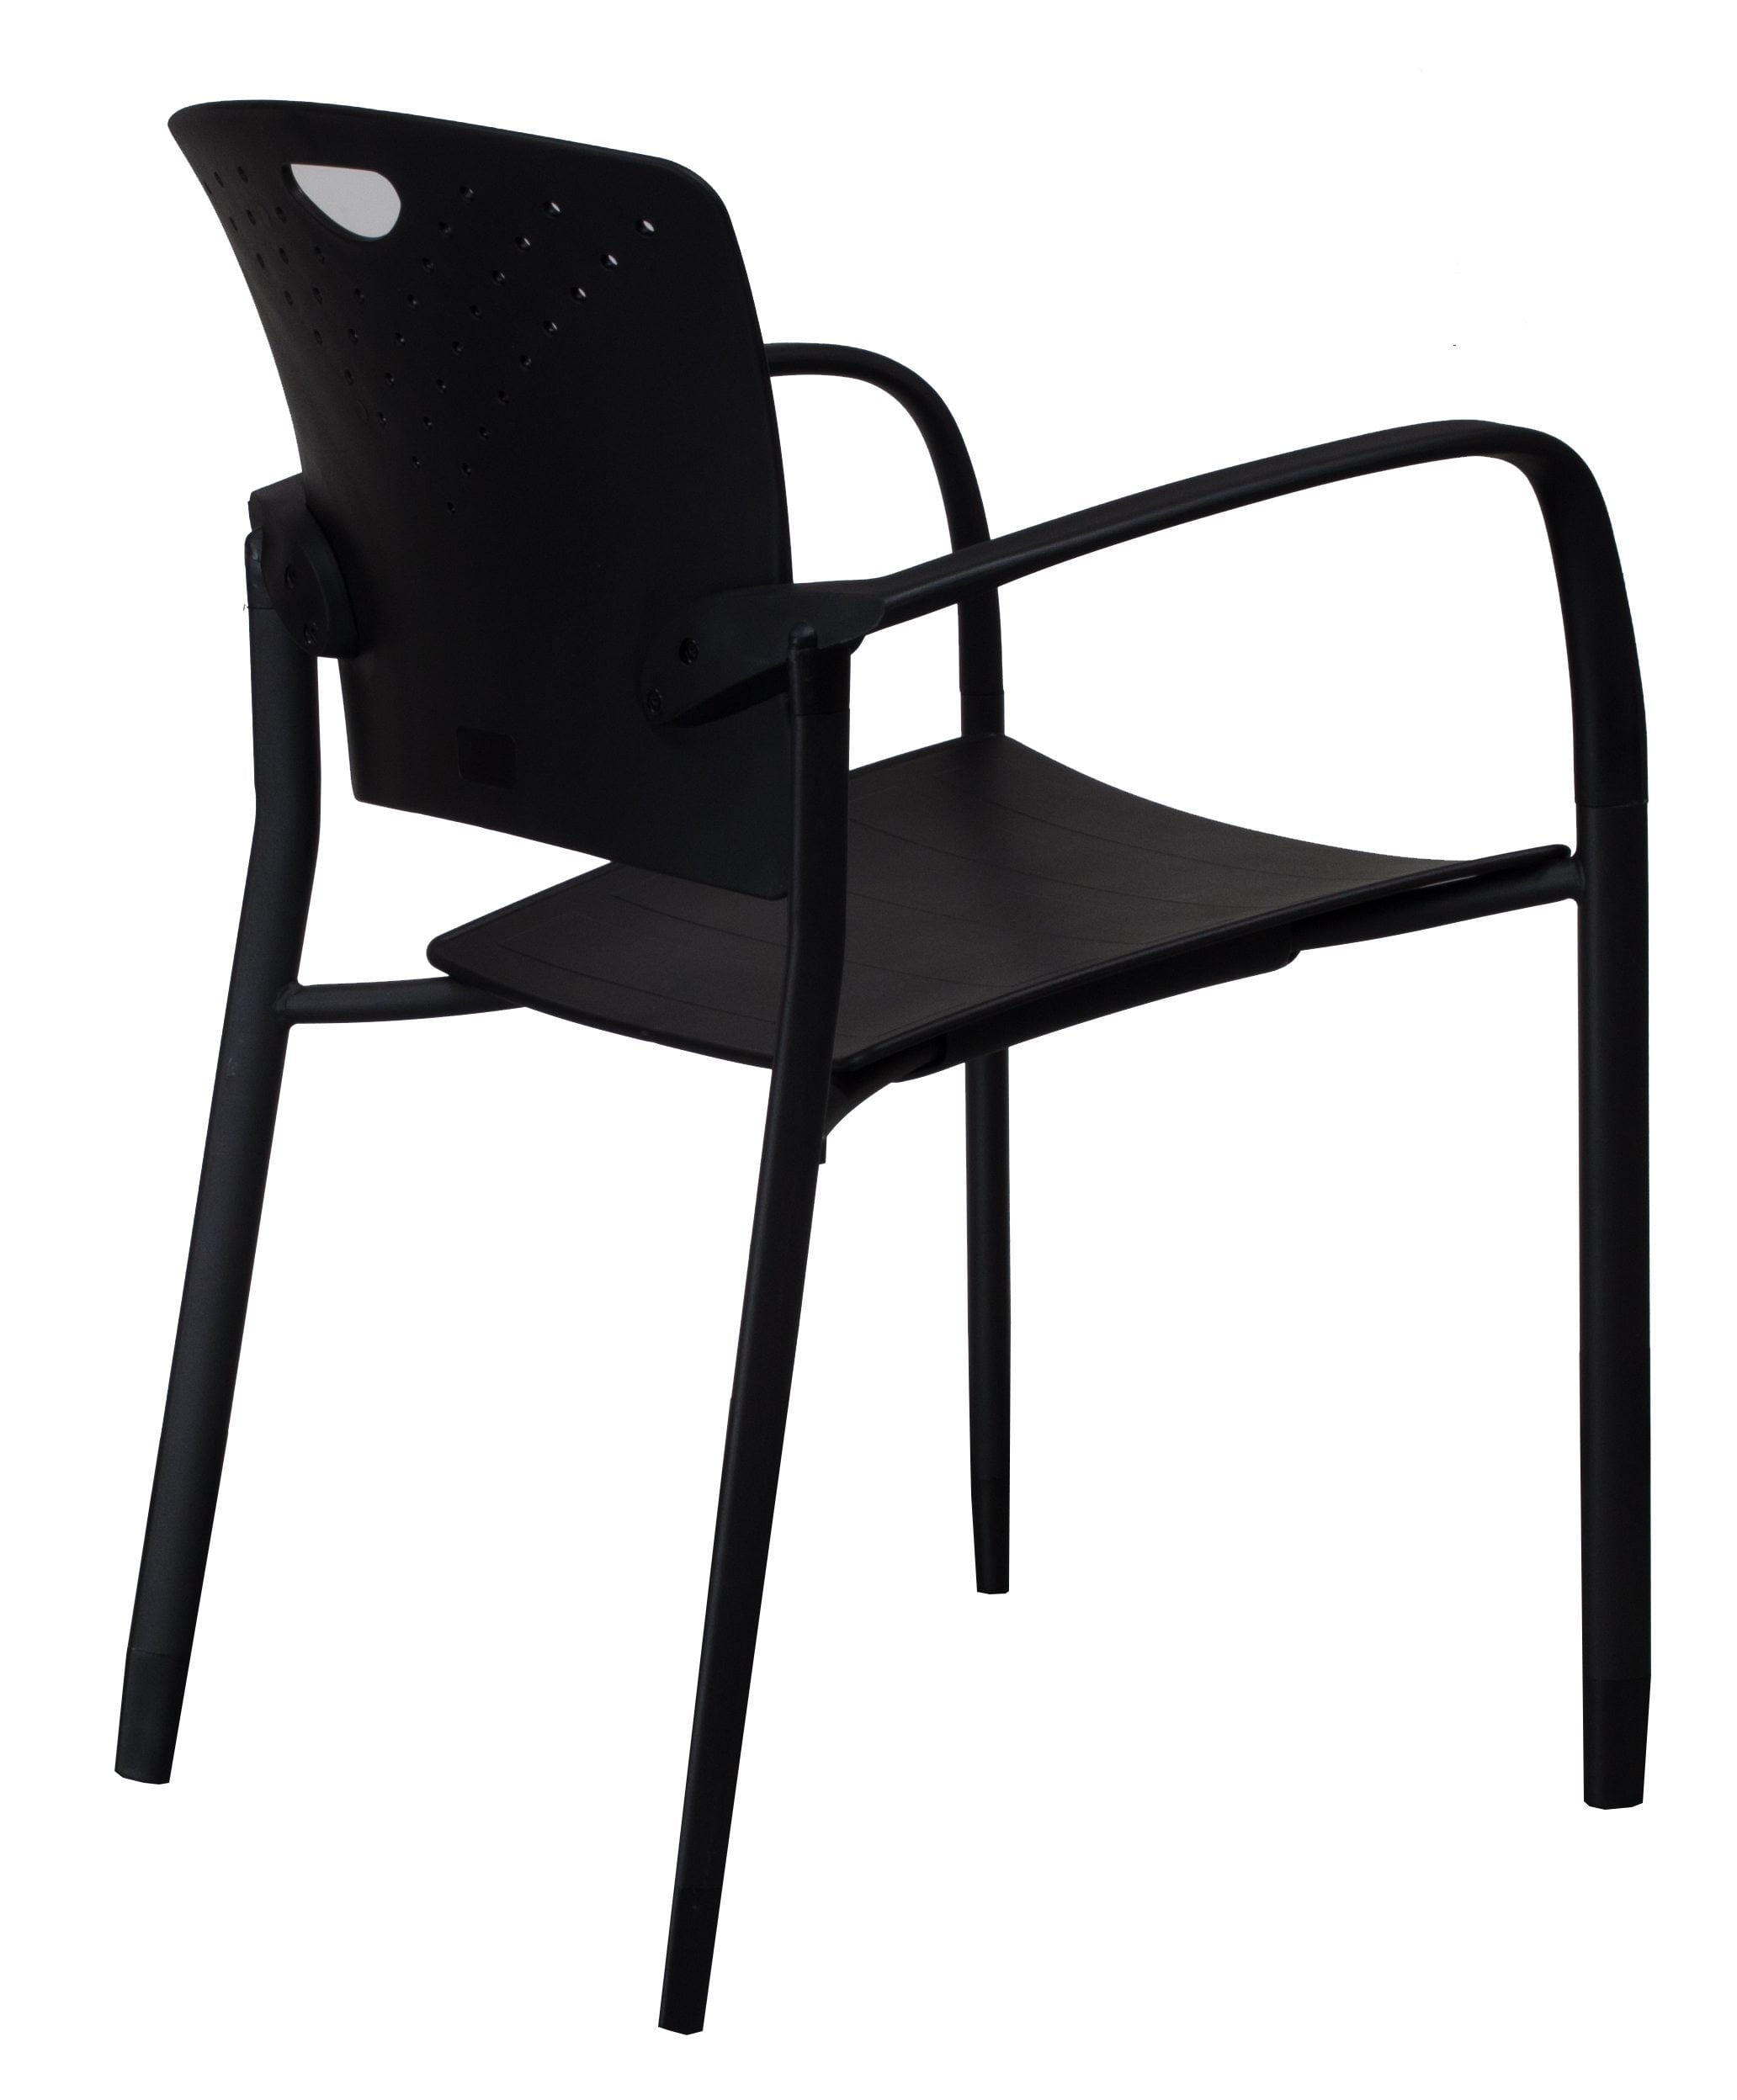 ergonomic chair brand leather wing uk go new stack black national office